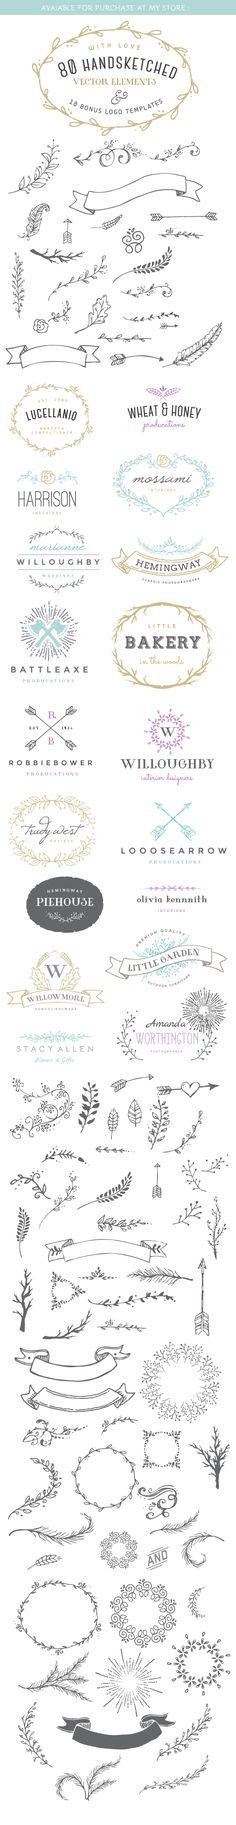 Hand Lettering Decorations: 80 Handsketched Vector Elements and Logo templates on Behance